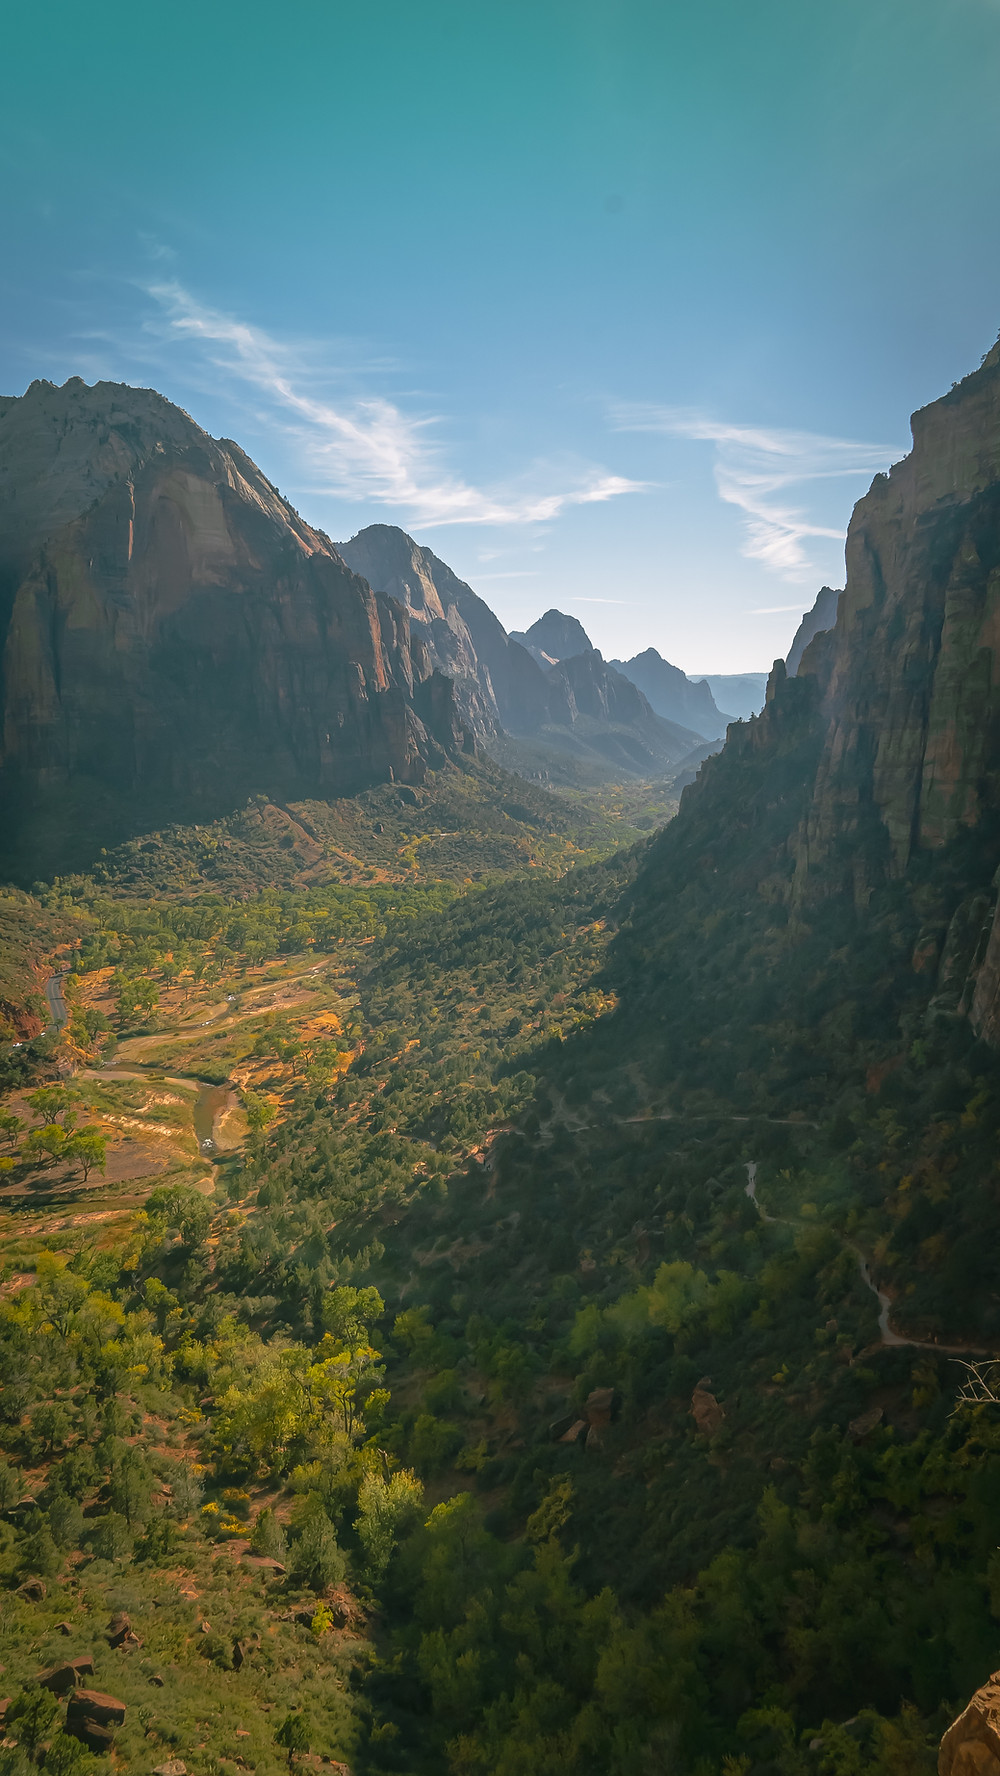 a birds eye view of Zion National Park in Utah. Craggy mountains under a blue sky, looming over a lush forest in the valley below